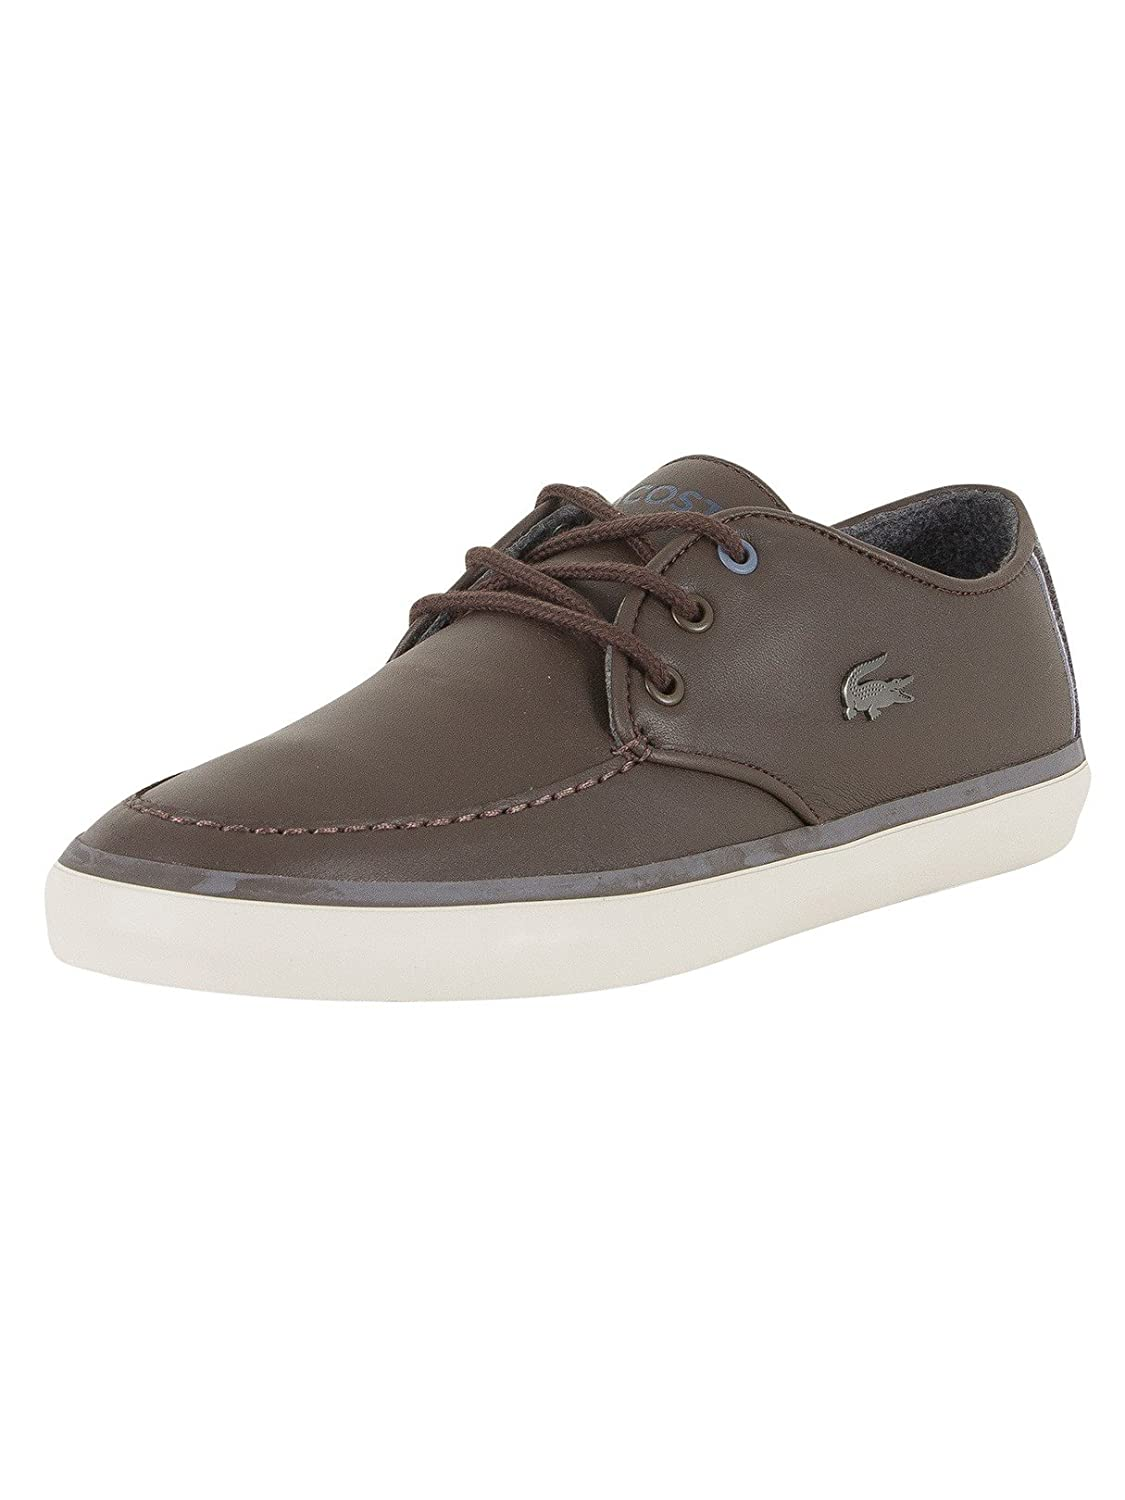 Lacoste Sevrin 417 Marron - Chaussures Baskets basses Homme